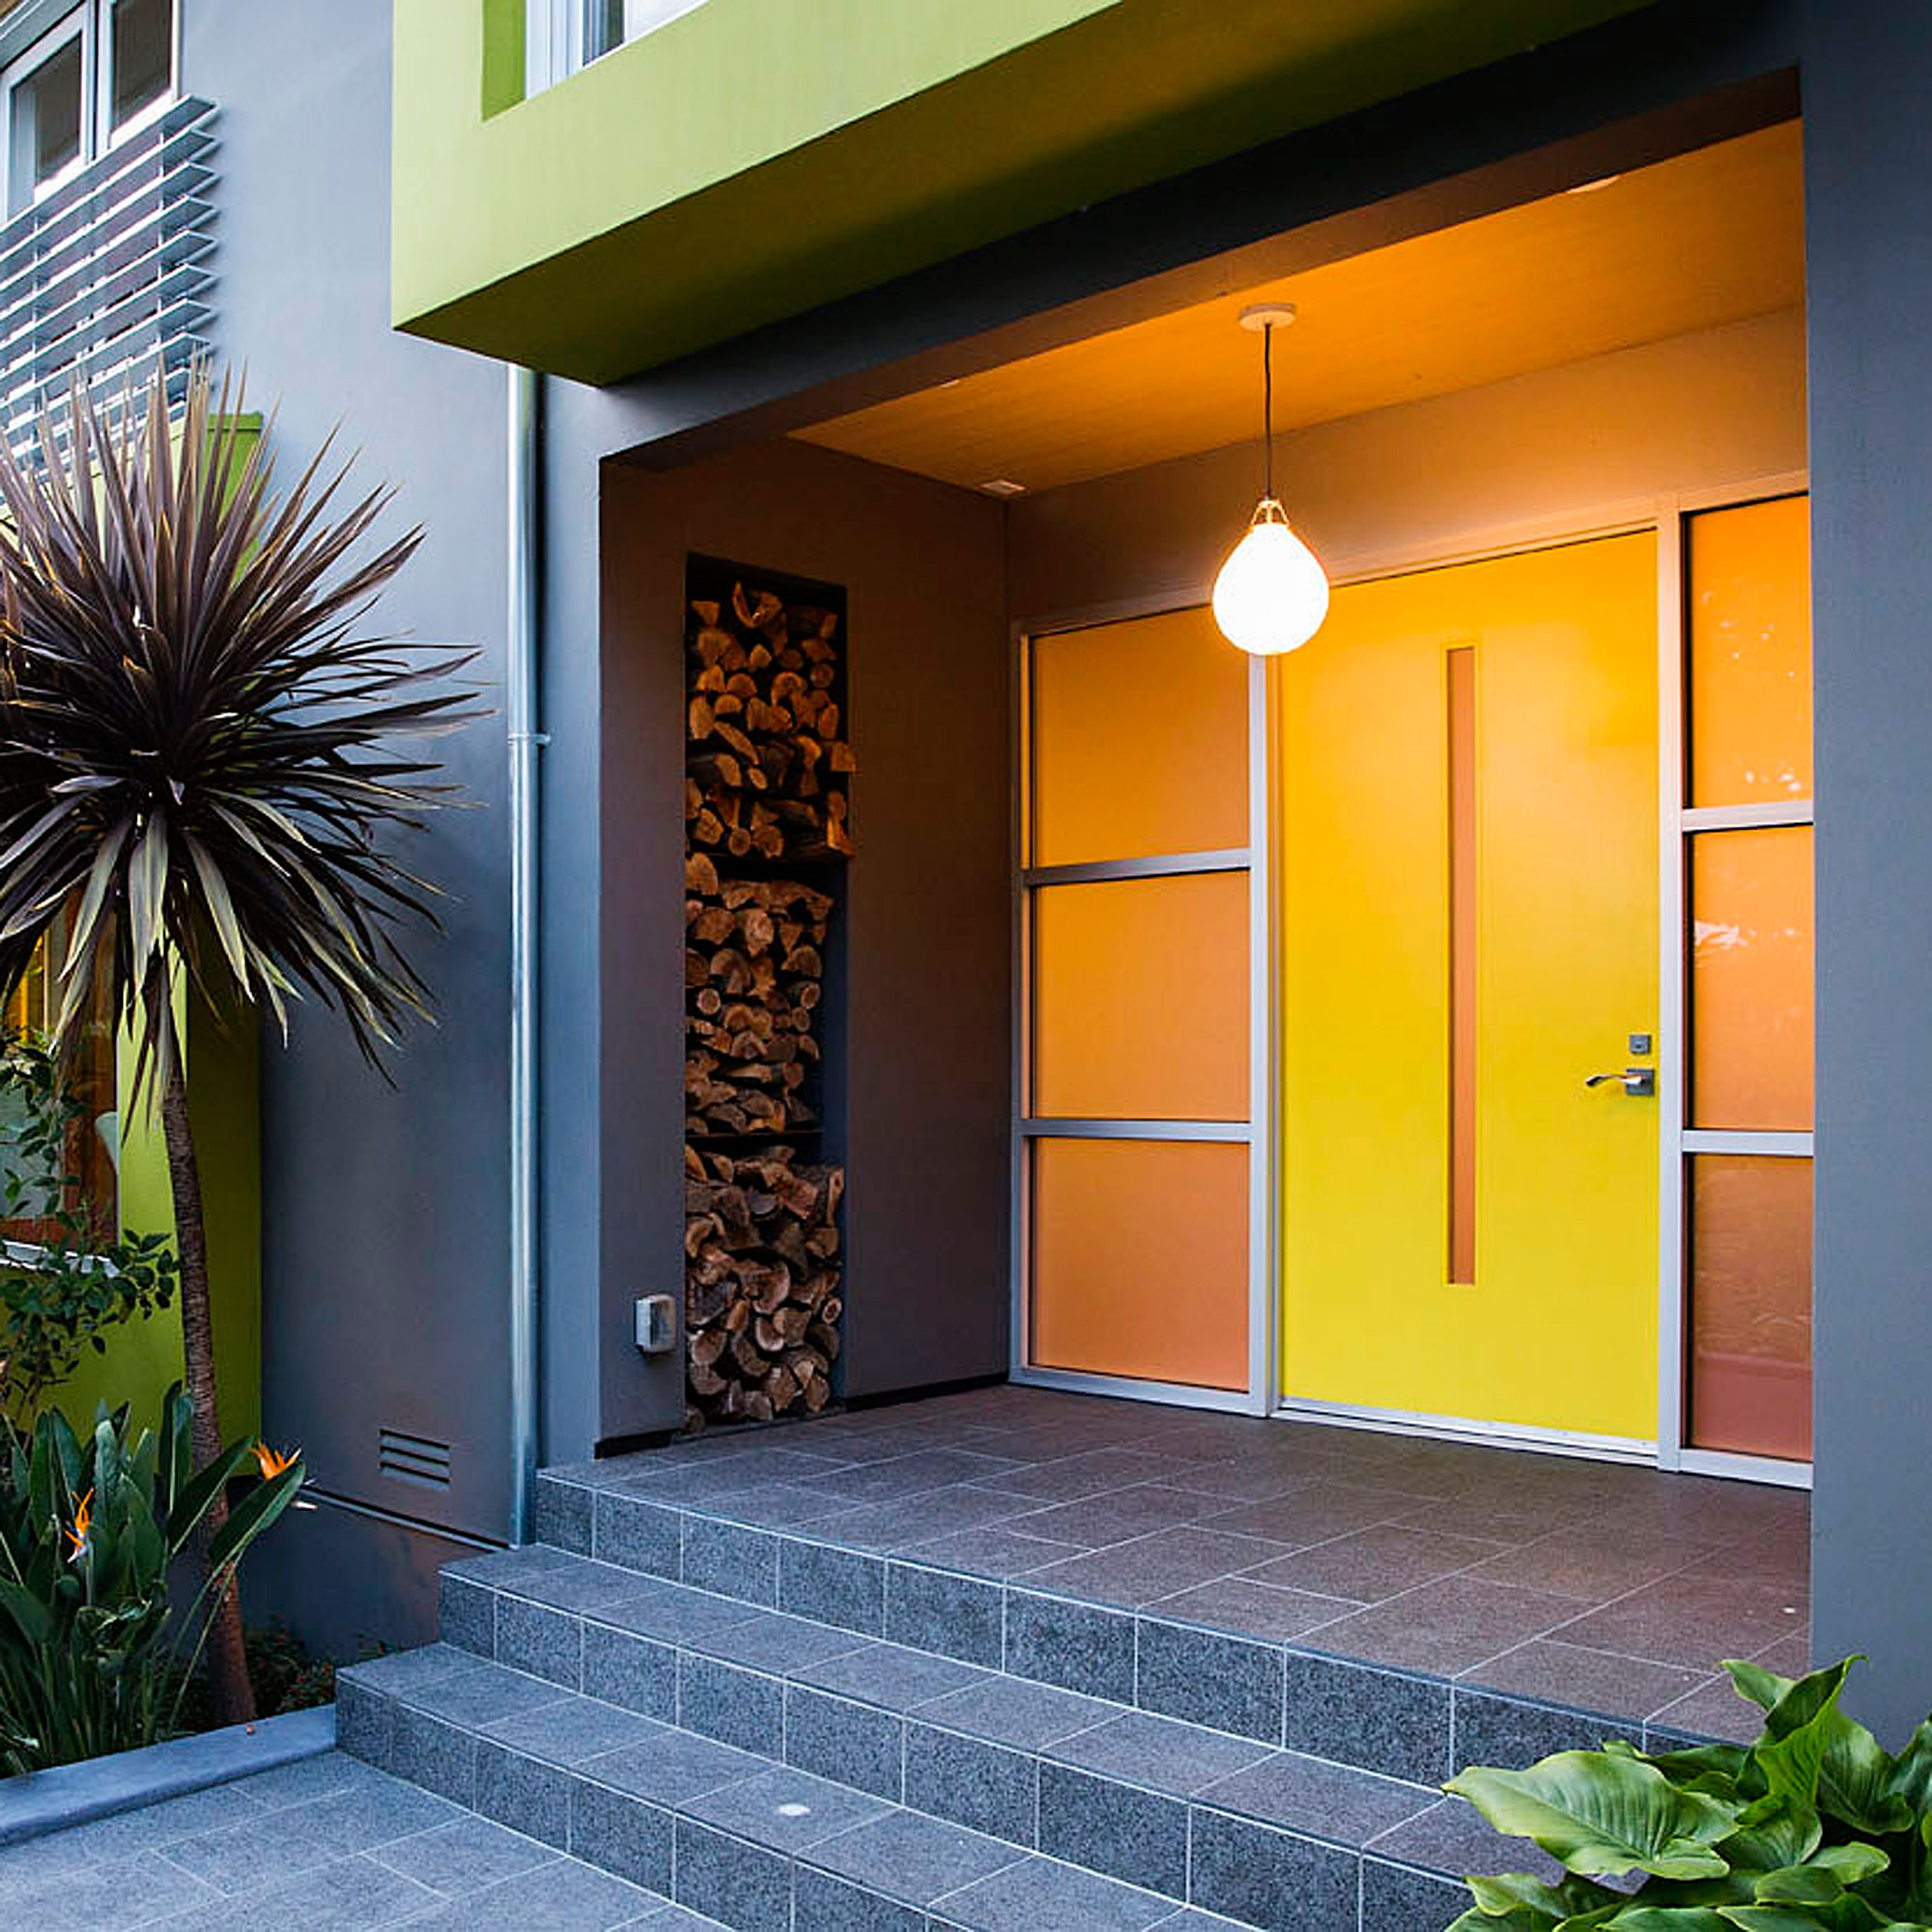 15 Favorite Front Doors & Entries - Sunset Magazine